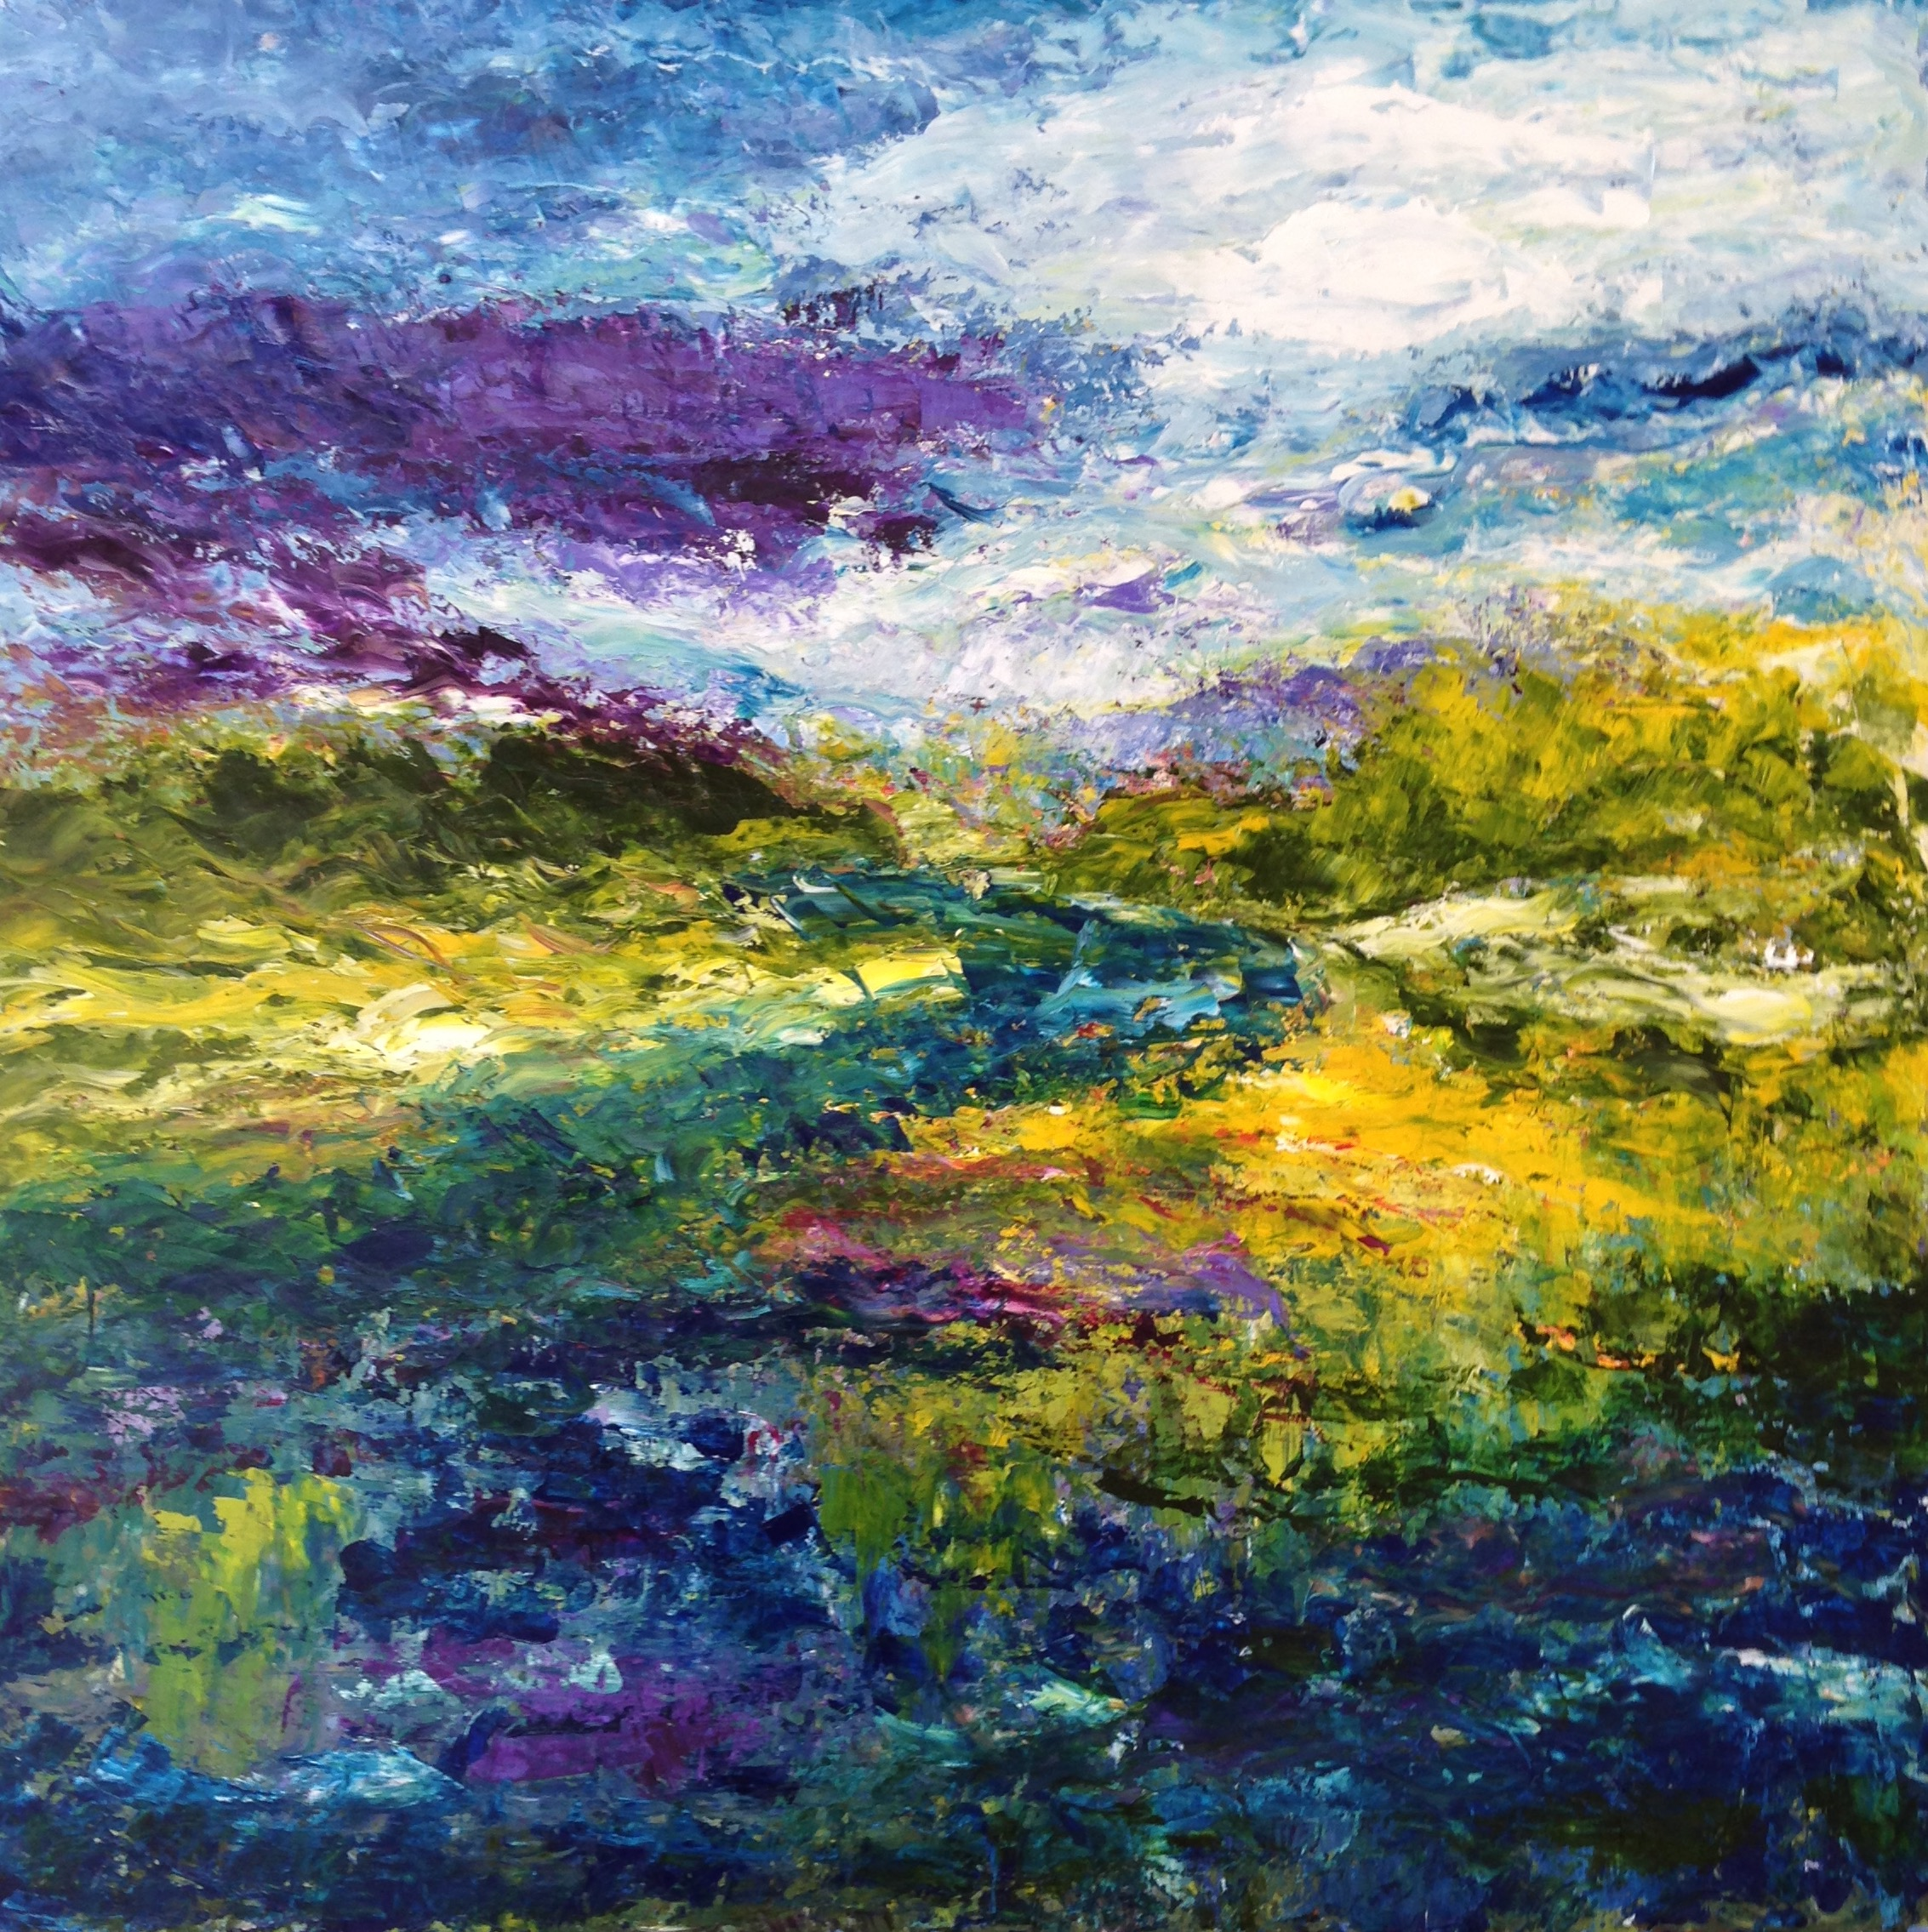 Approaching Storm Over River Valley (sold)